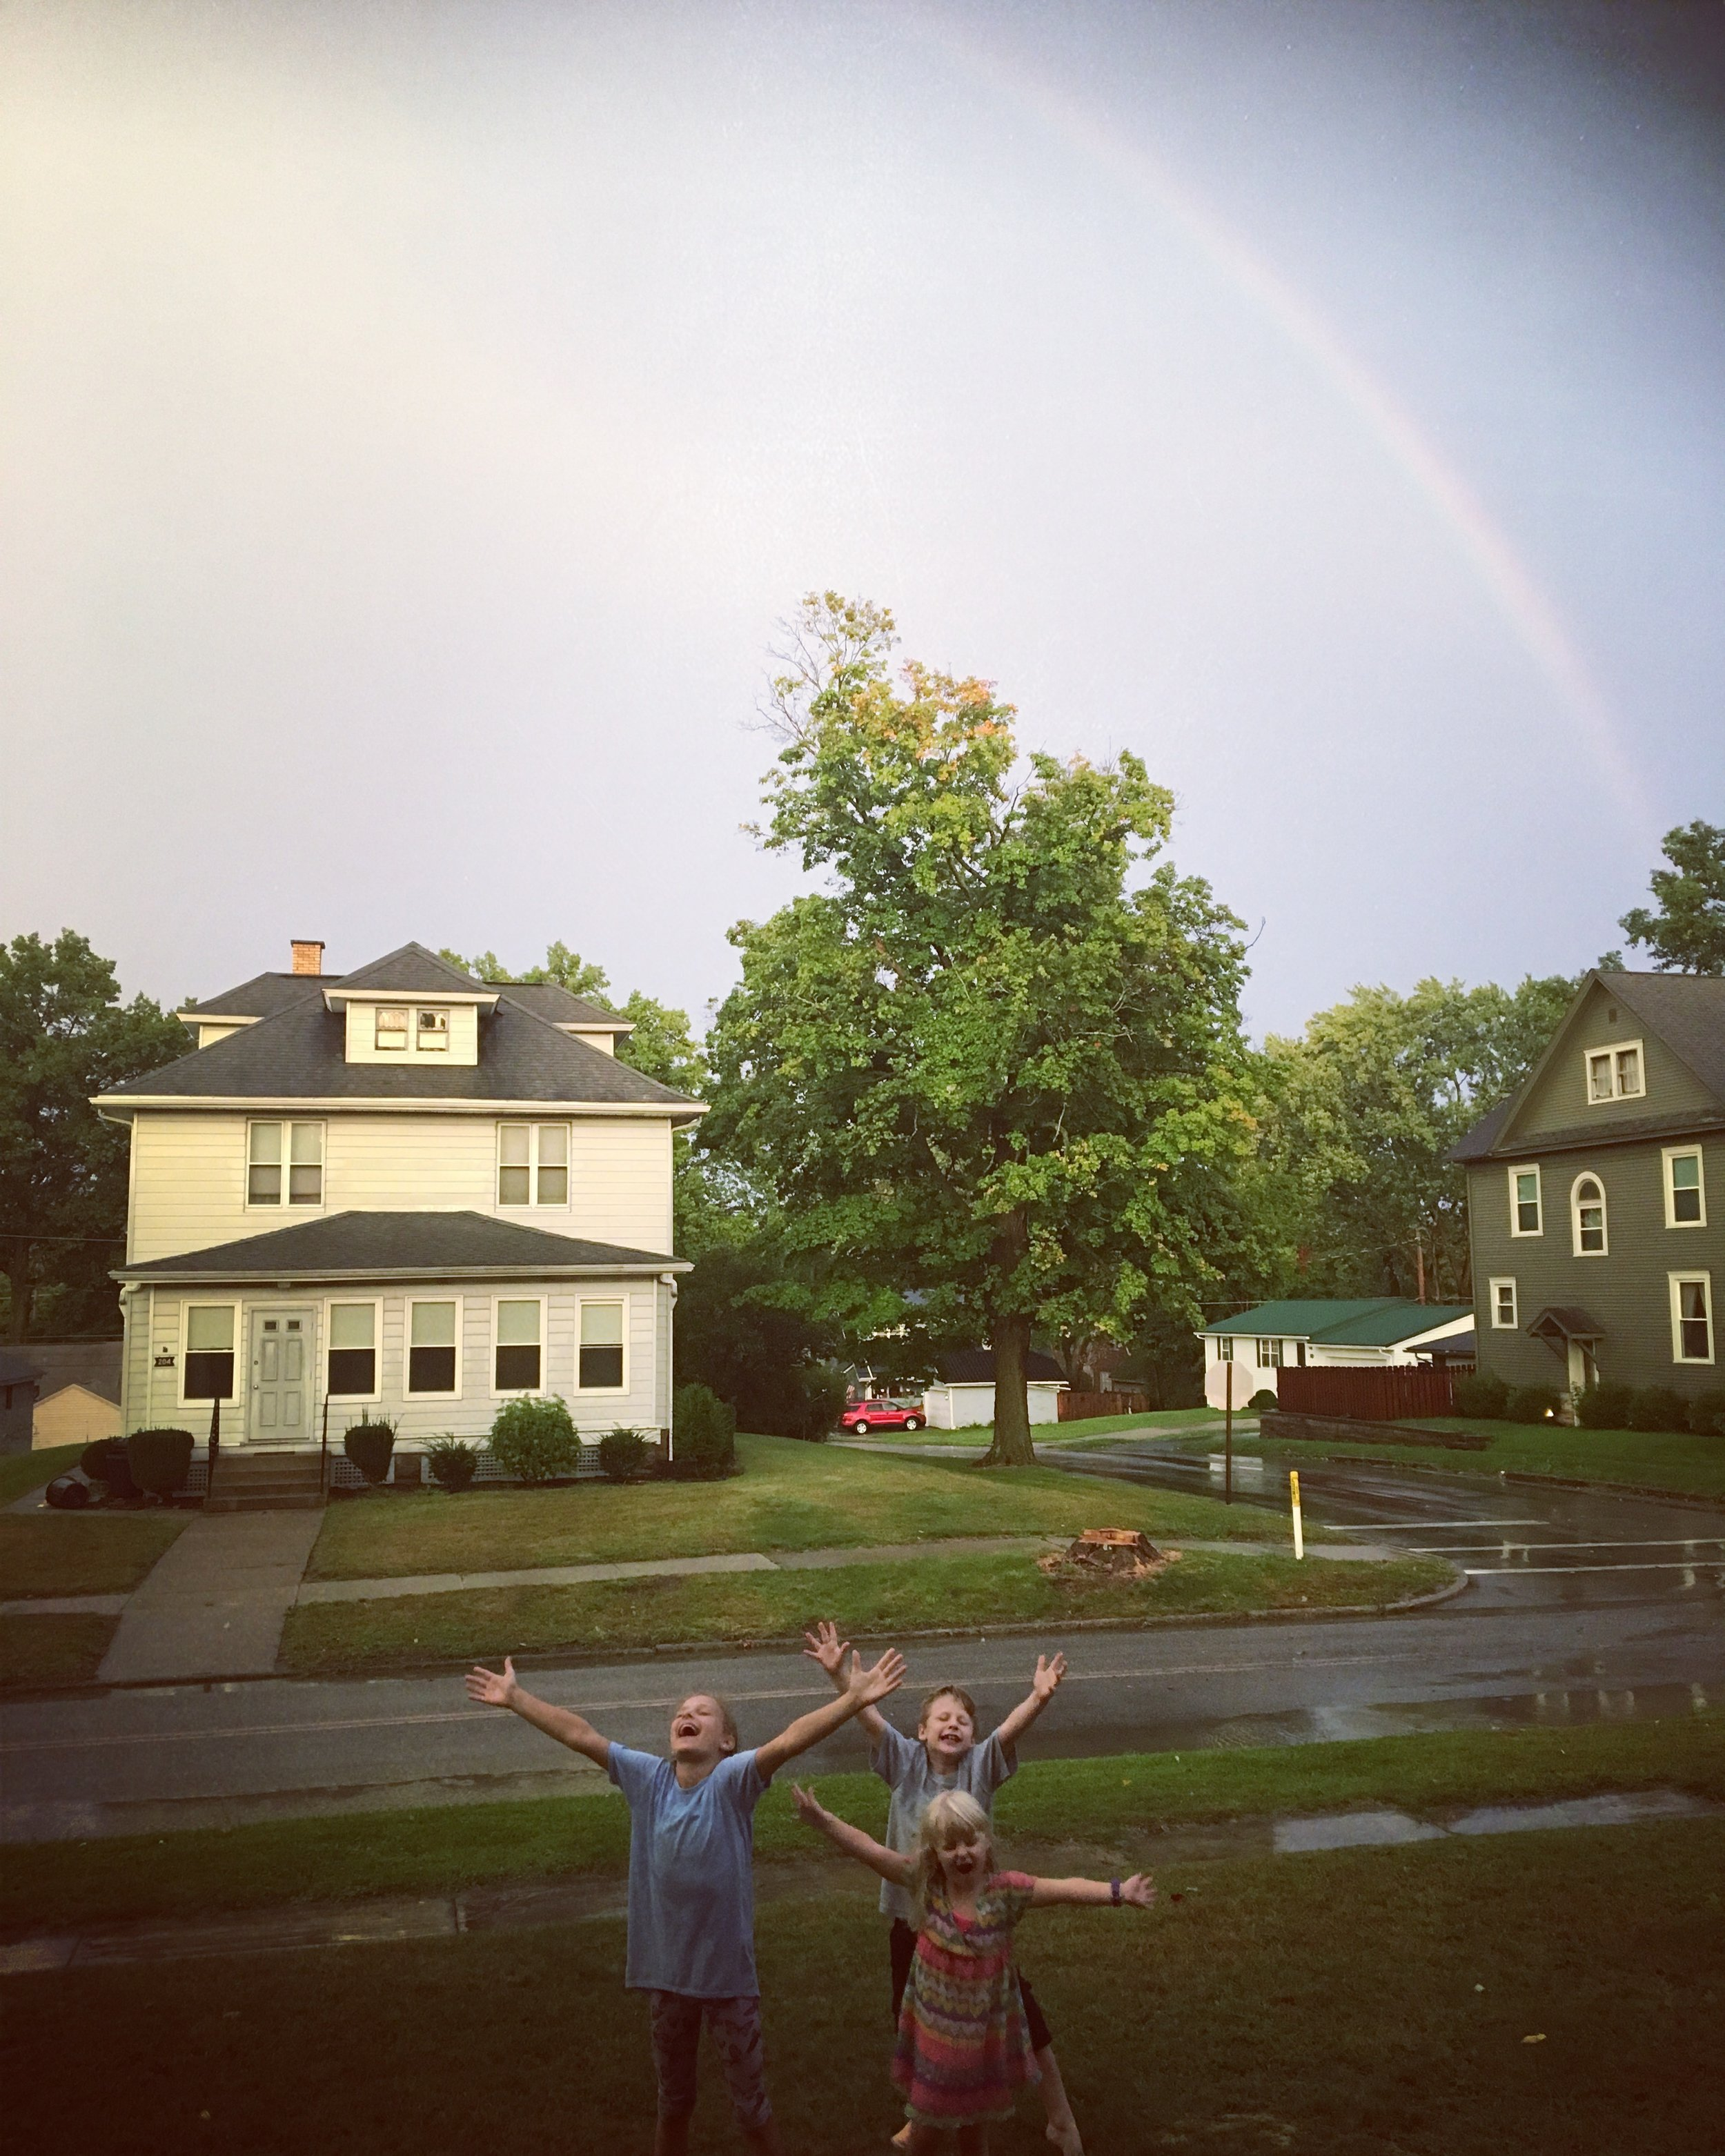 Finding joy in a not-so-mundane rainbow